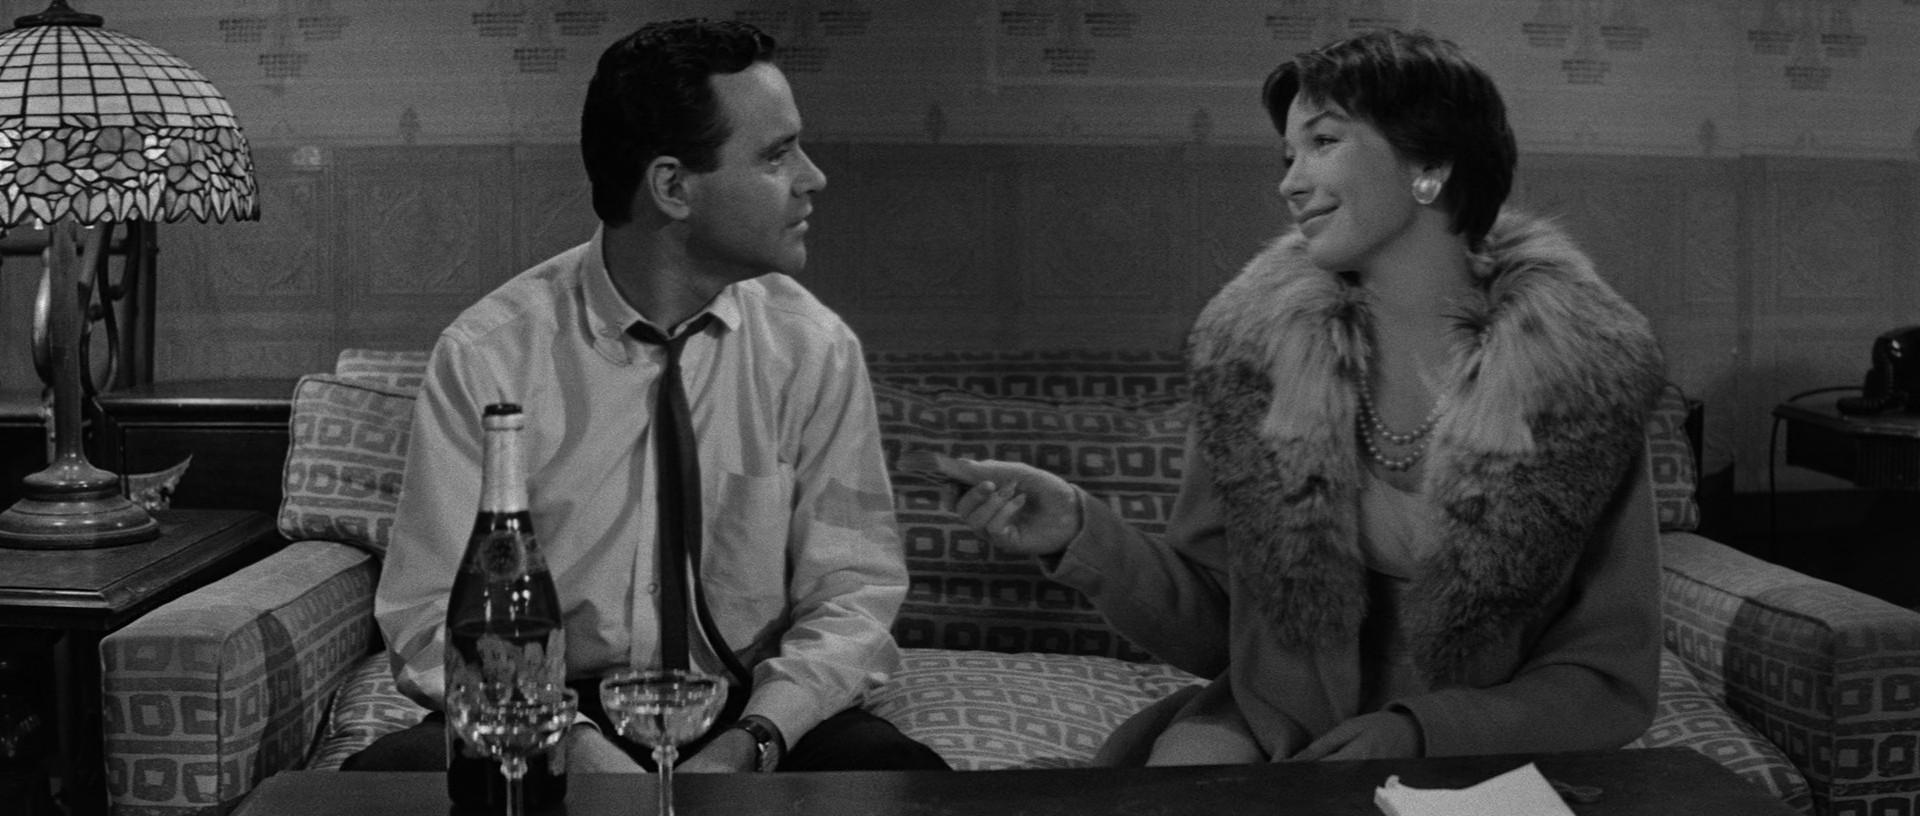 The Apartment (La Garçonnière, Billy Wilder 1960)